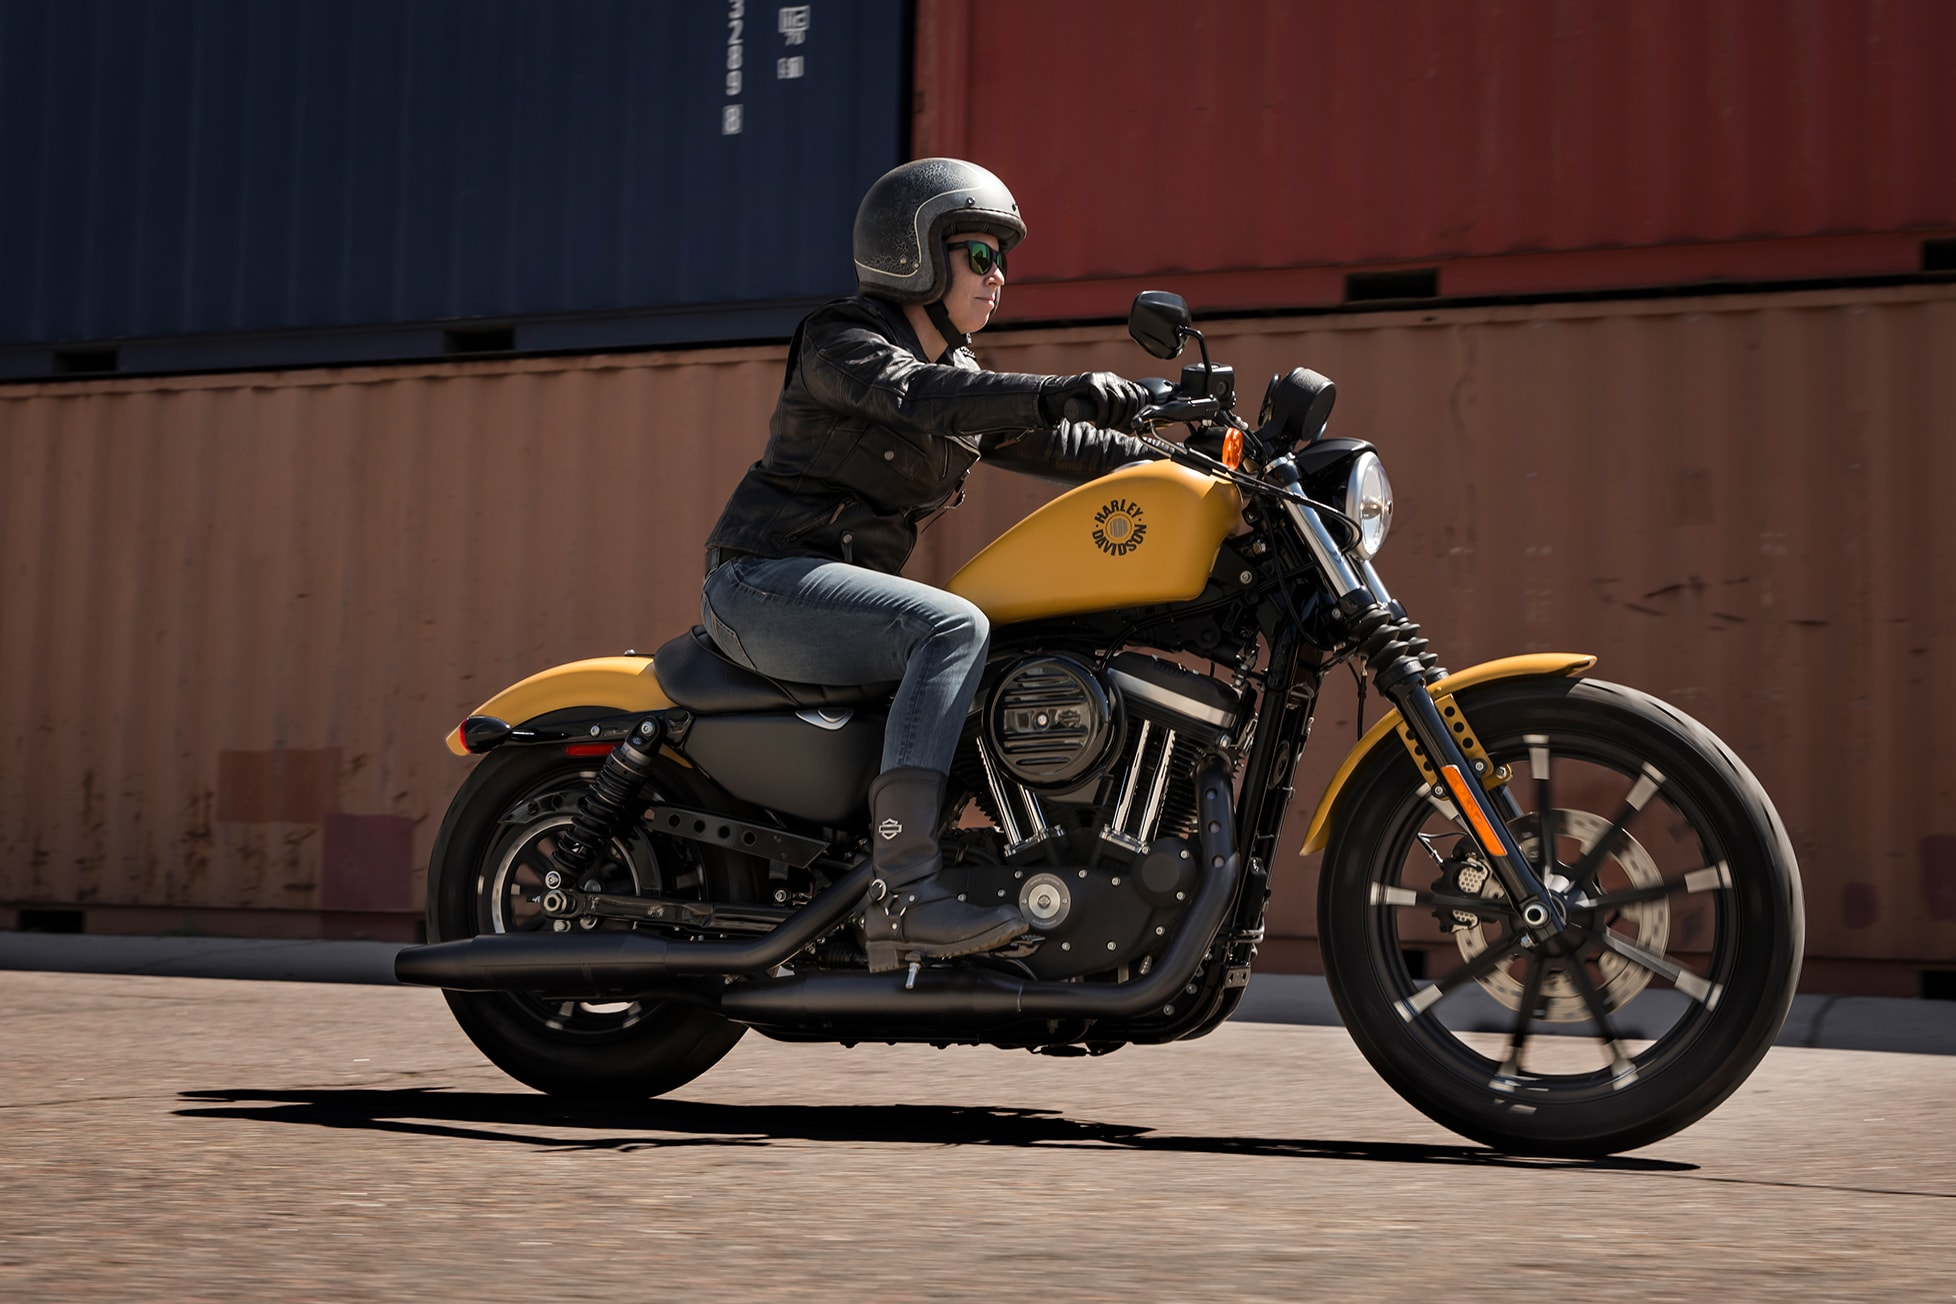 hight resolution of woman riding a 2019 iron 883 motorcycle